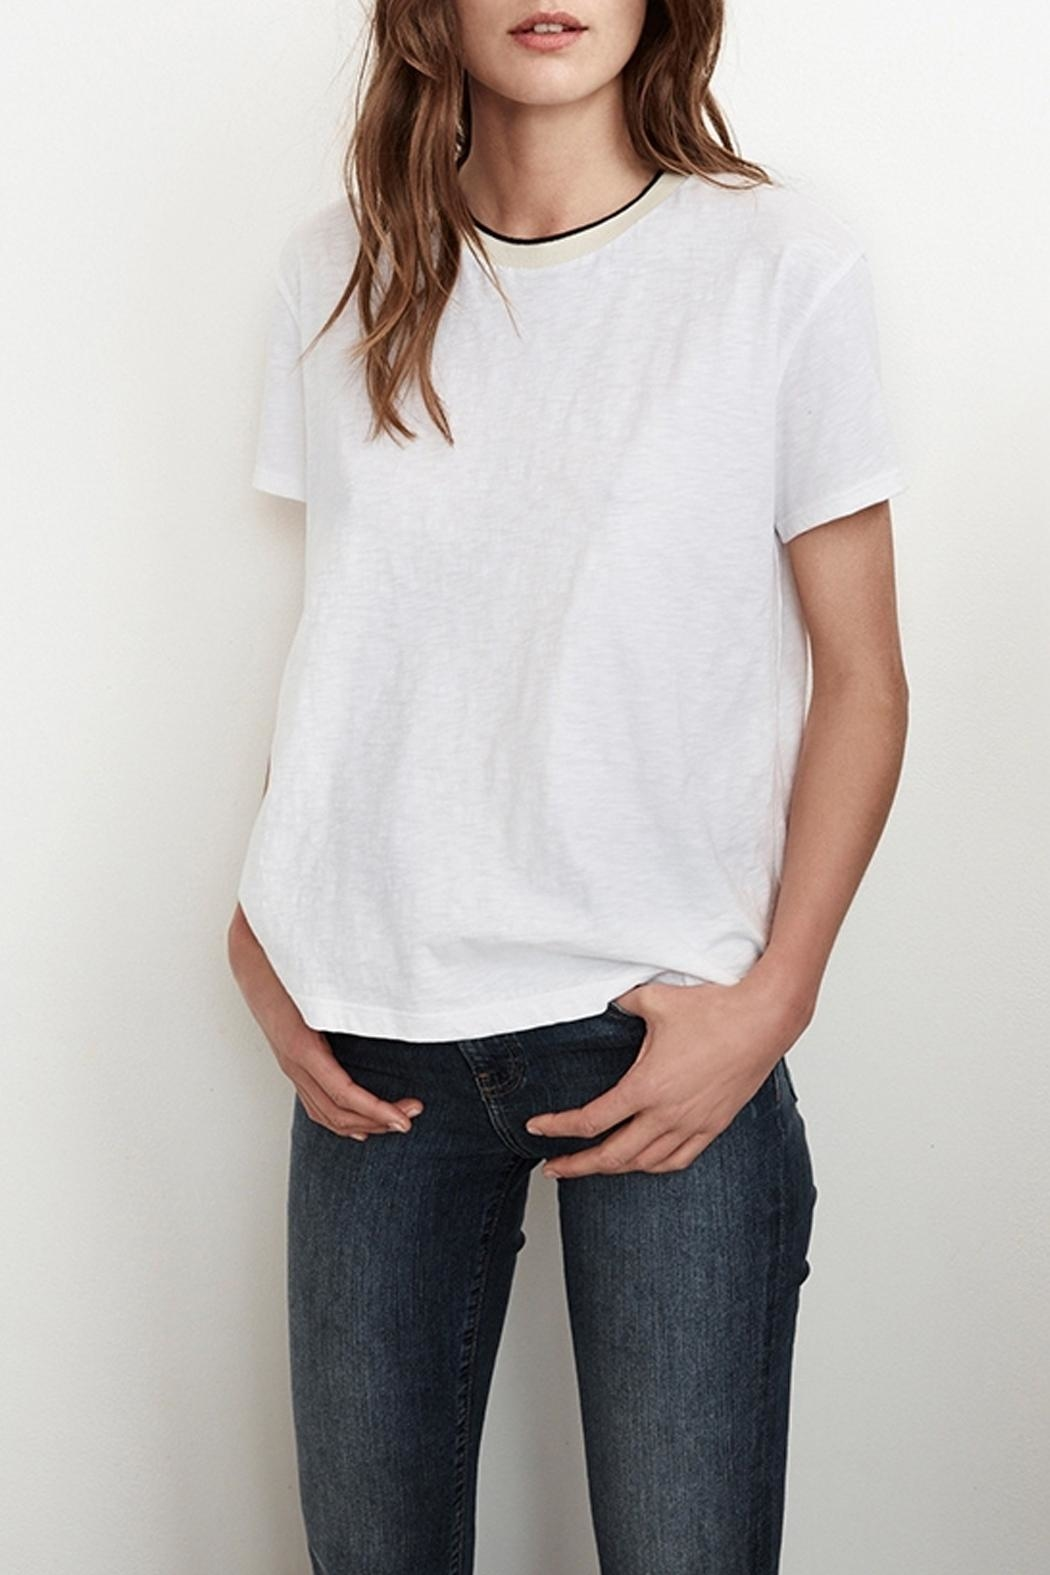 Velvet Tristan Cotton Tee - Front Cropped Image